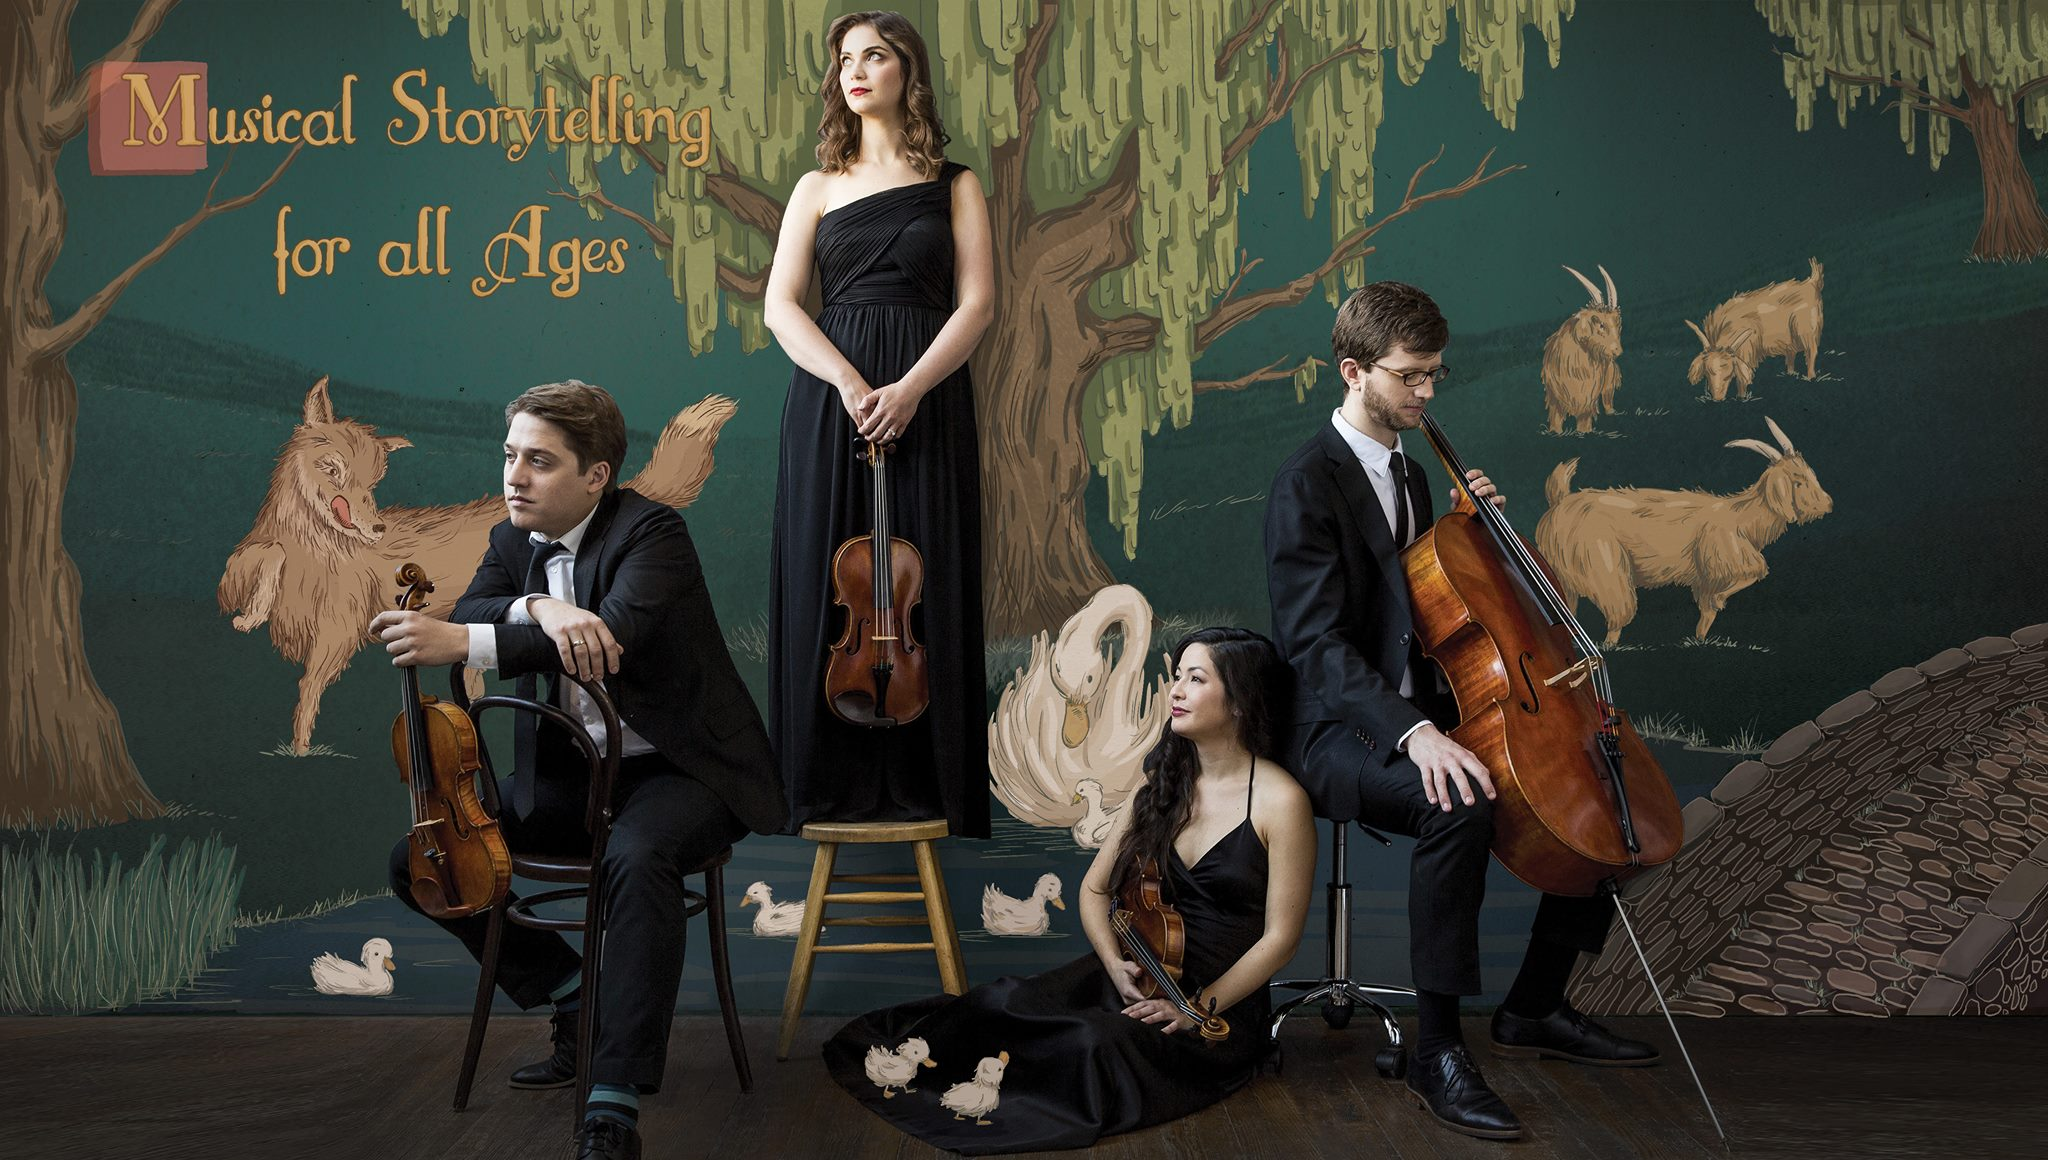 Aeolus Quartet in front of illustrated fables